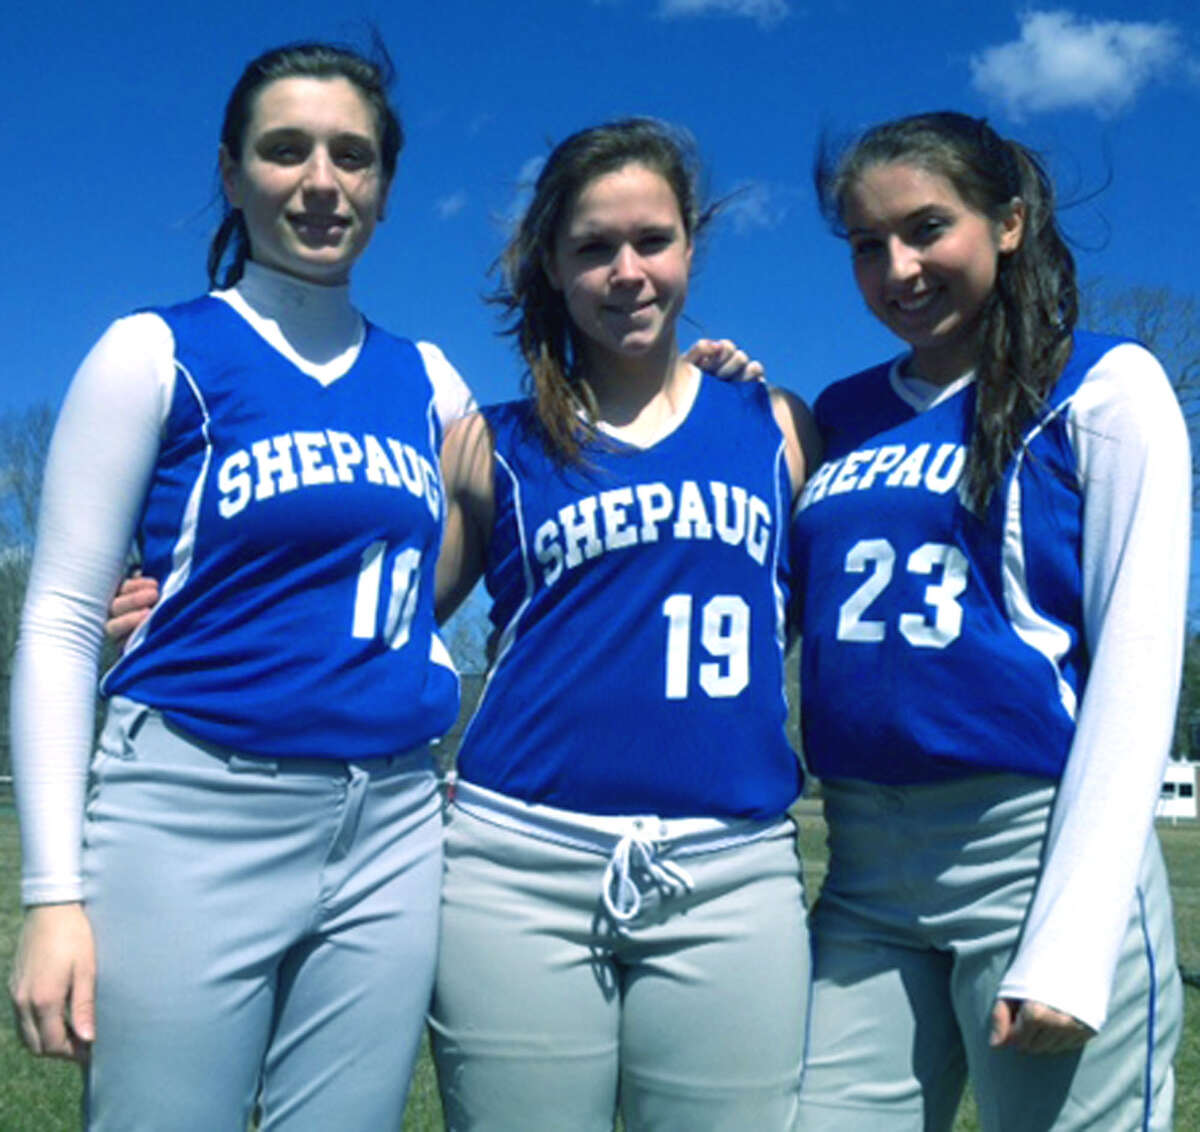 Captaining the Spartans this spring are fellow seniors, from left to right, Kate DeWitte, Bridget McCarthy and Sam Bisignano of Shepaug Valley High School softball. April 2013